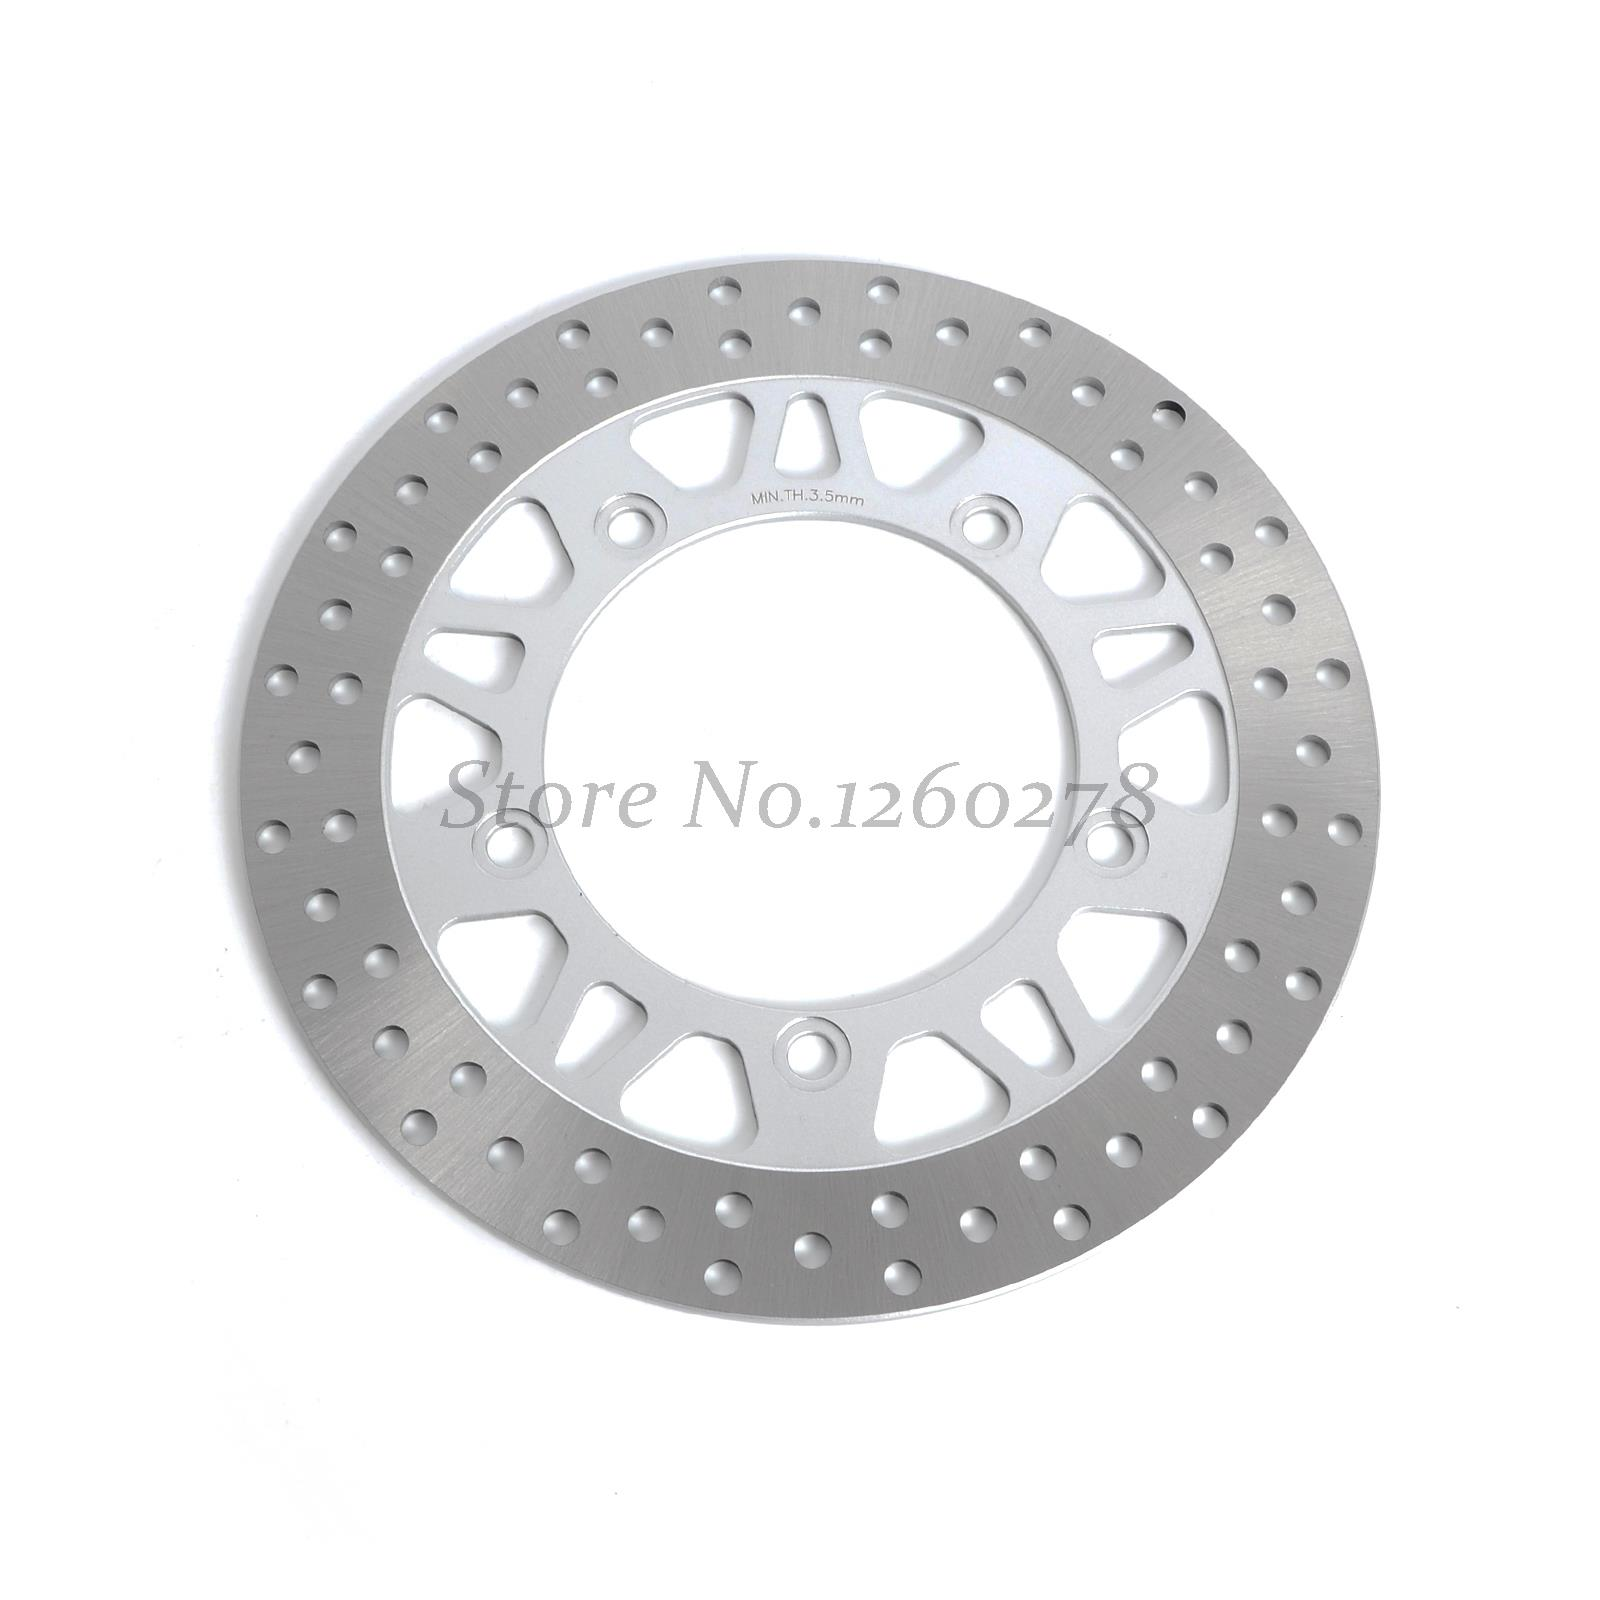 New Motorcycle Front Rotor Brake Disc For Suzuki AN 250 400 K7 ZK7 K8 ZK8 K9